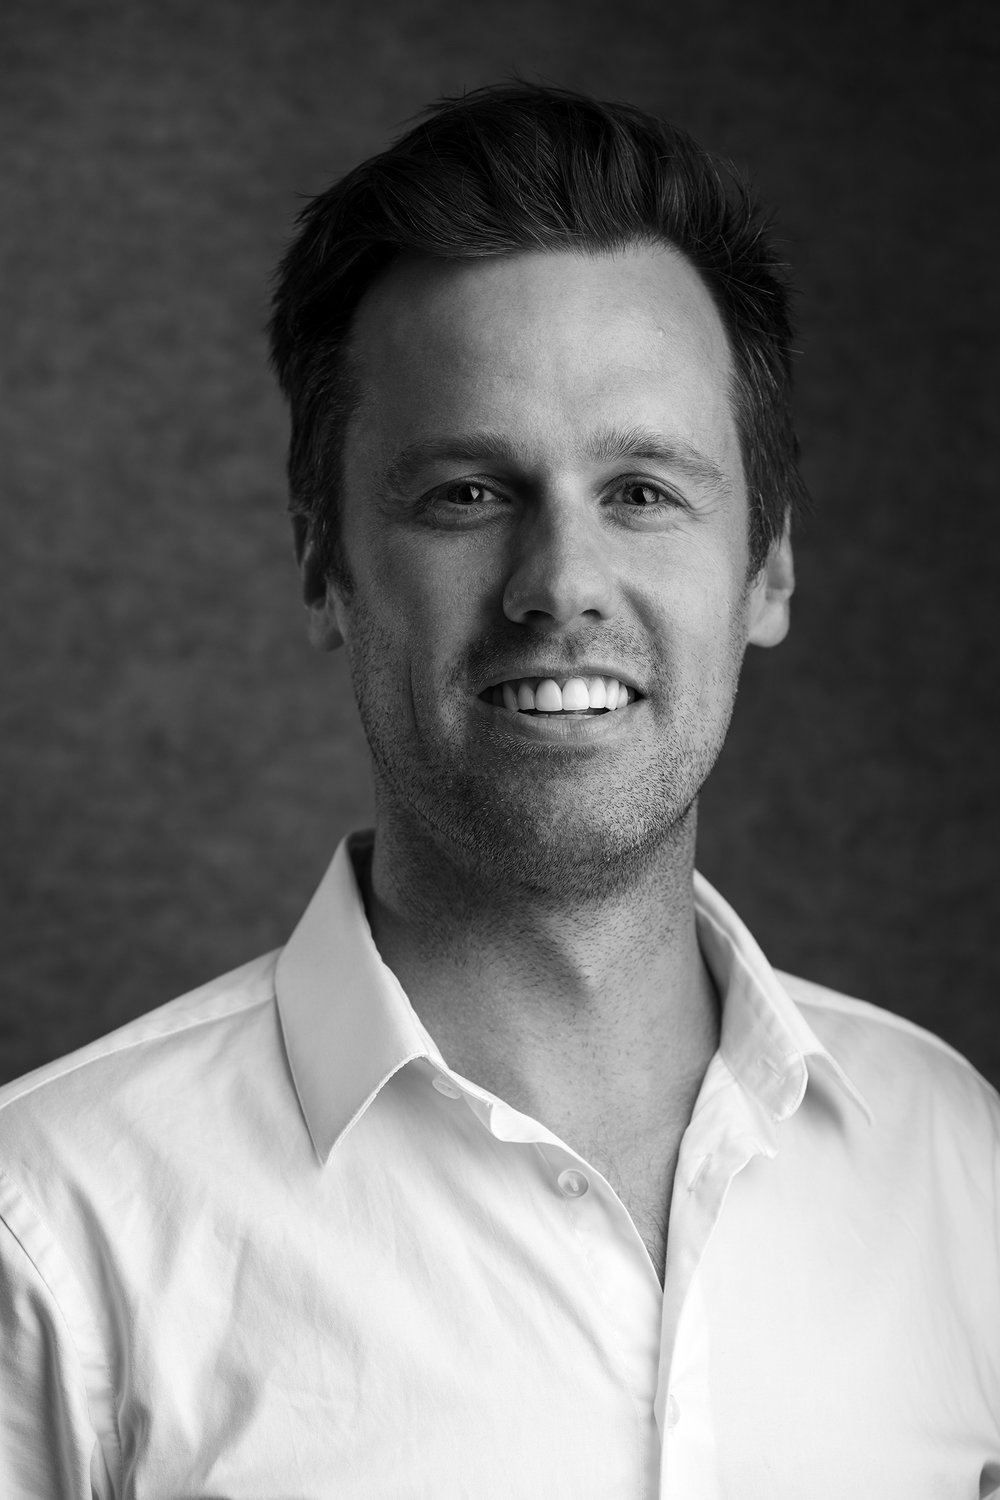 Luke Fry, Director - B. Int. Des, B. Des. Arch, M. ArchLuke Fry is a multi-award winning, creative and experienced professional who has obtained a wealth of invaluable knowledge working for some of Melbourne's most renowned and awarded boutique architecture practices. Educated in Architecture, Interior Design and the benefit of also being a Registered Builder, Luke has a refined understanding of design and a passion for creating unique, individual spaces for his clients.Luke's design aesthetic is firmly focused on a refined simplicity with exceptional detail, creating light, healthy and sustainable spaces which can be enjoyed for generations to come.